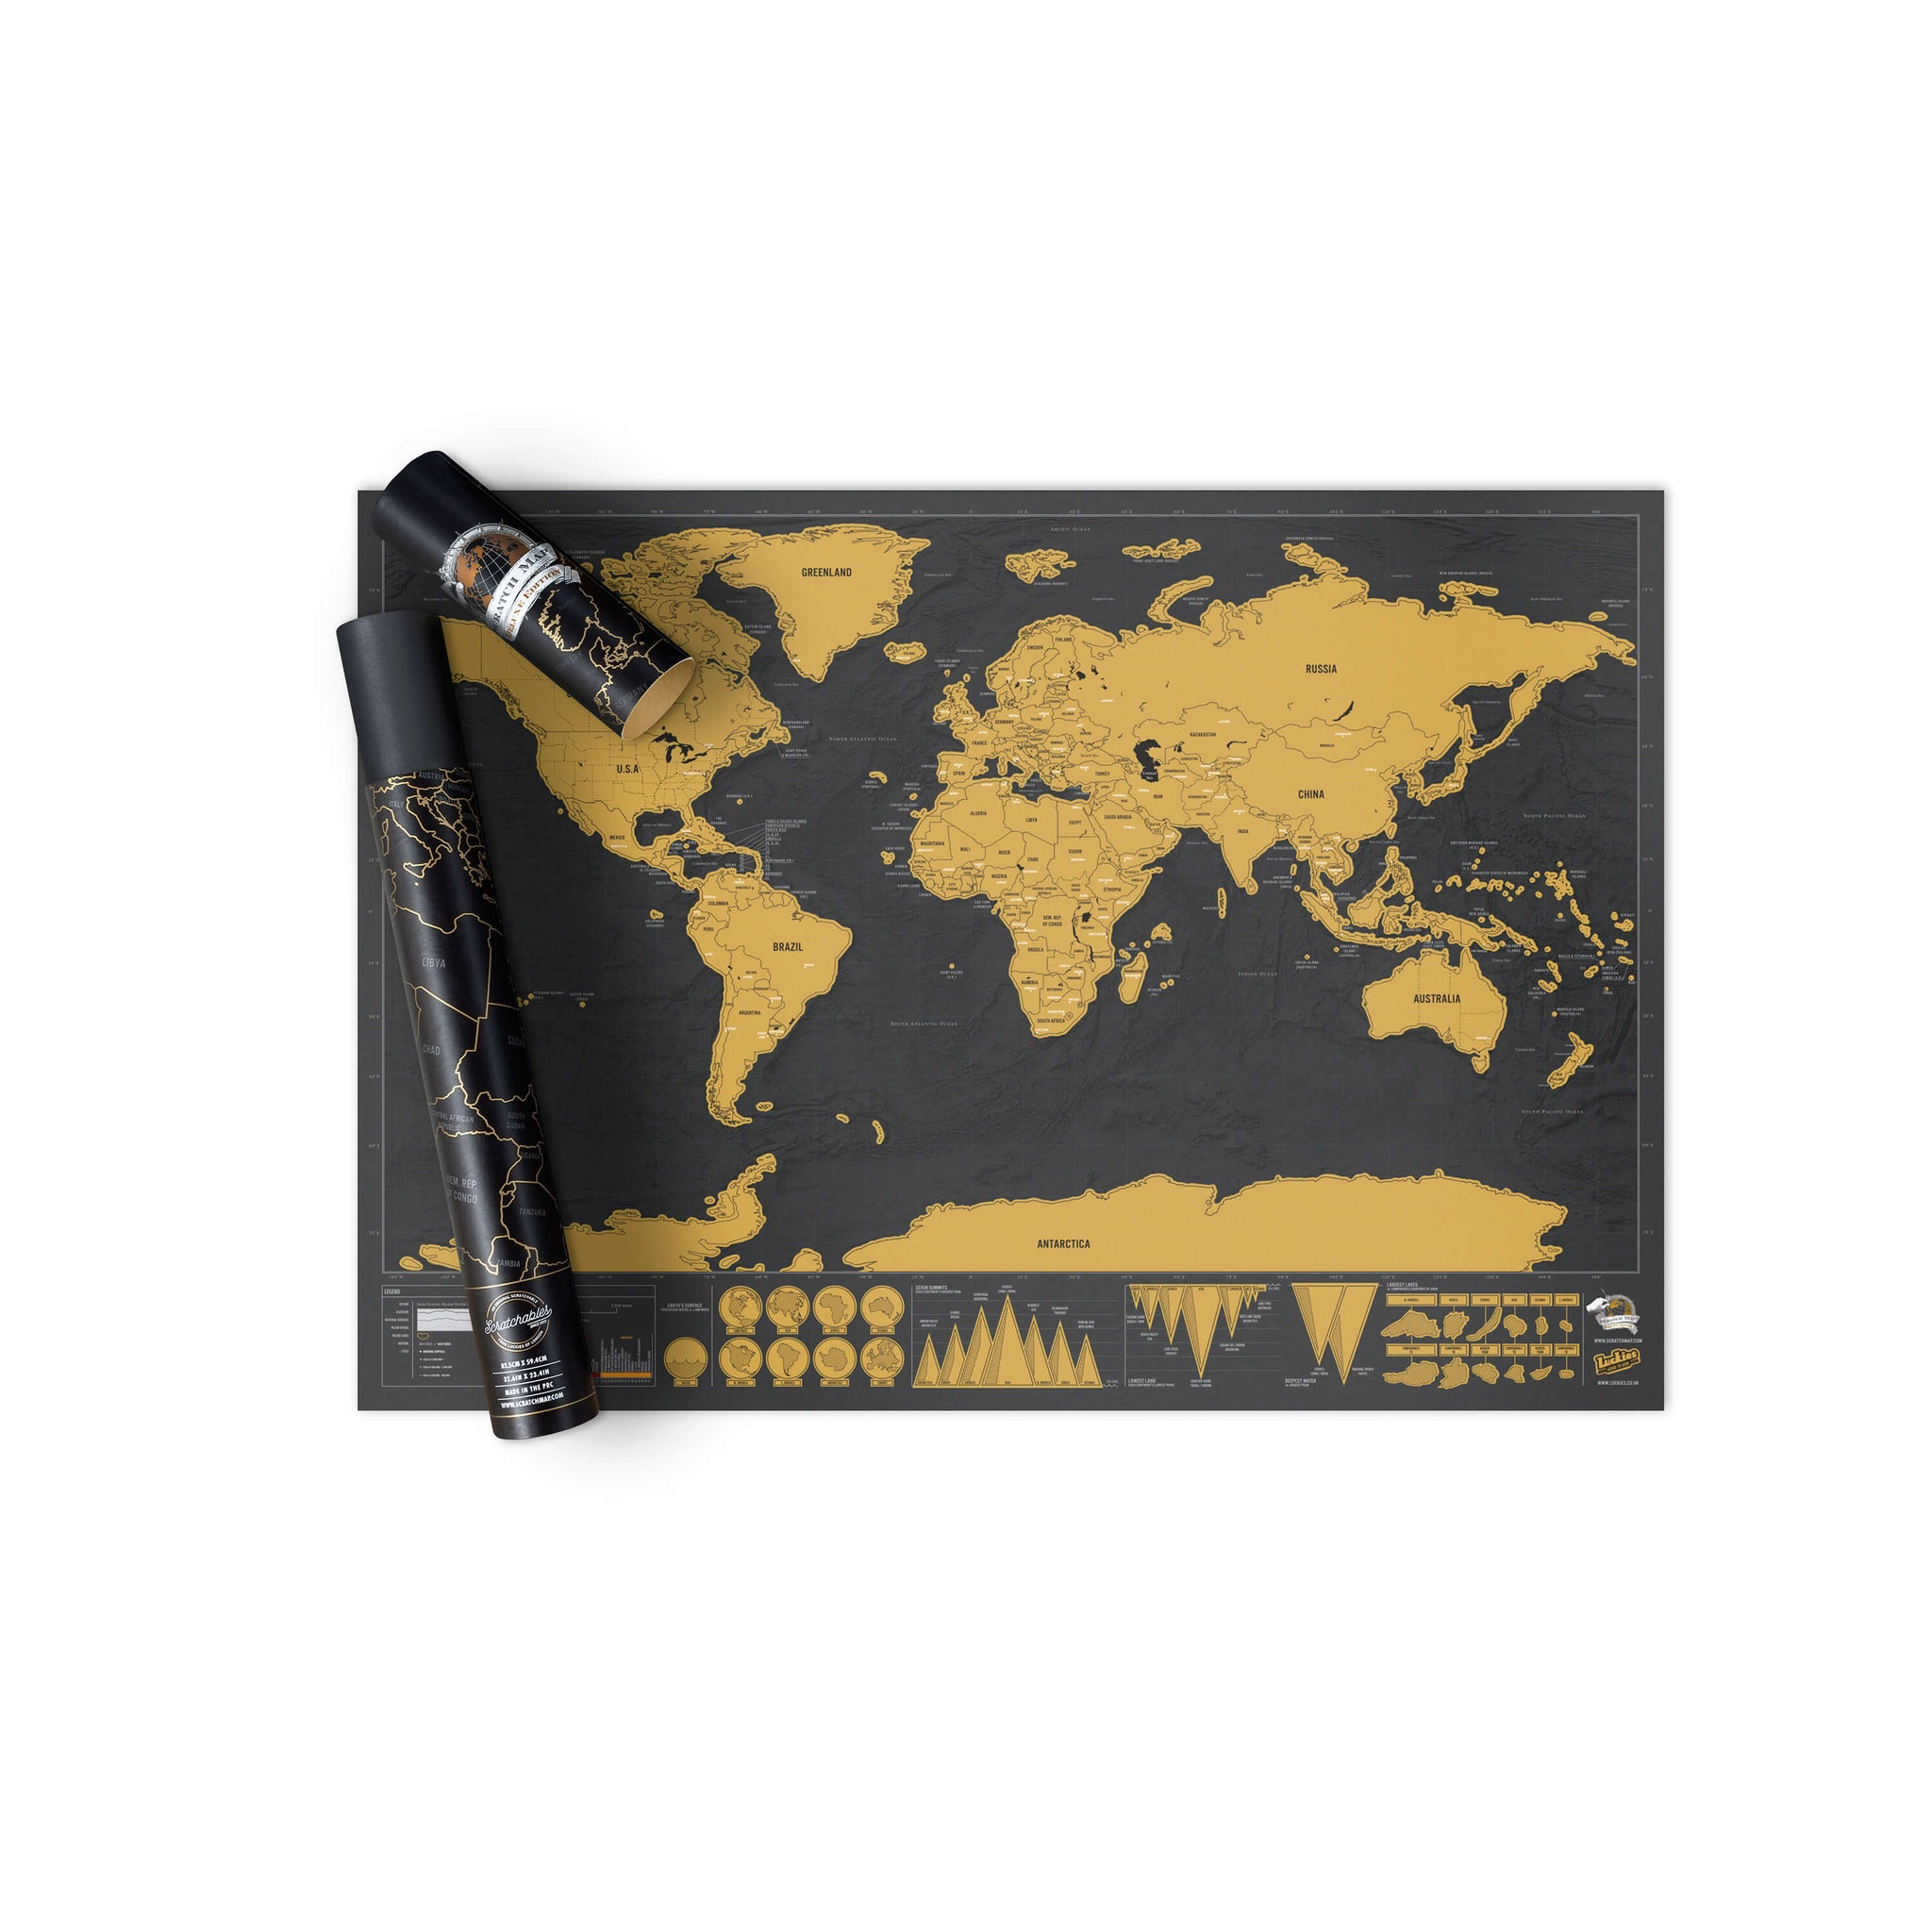 scratch off world map deluxe create your own travel map